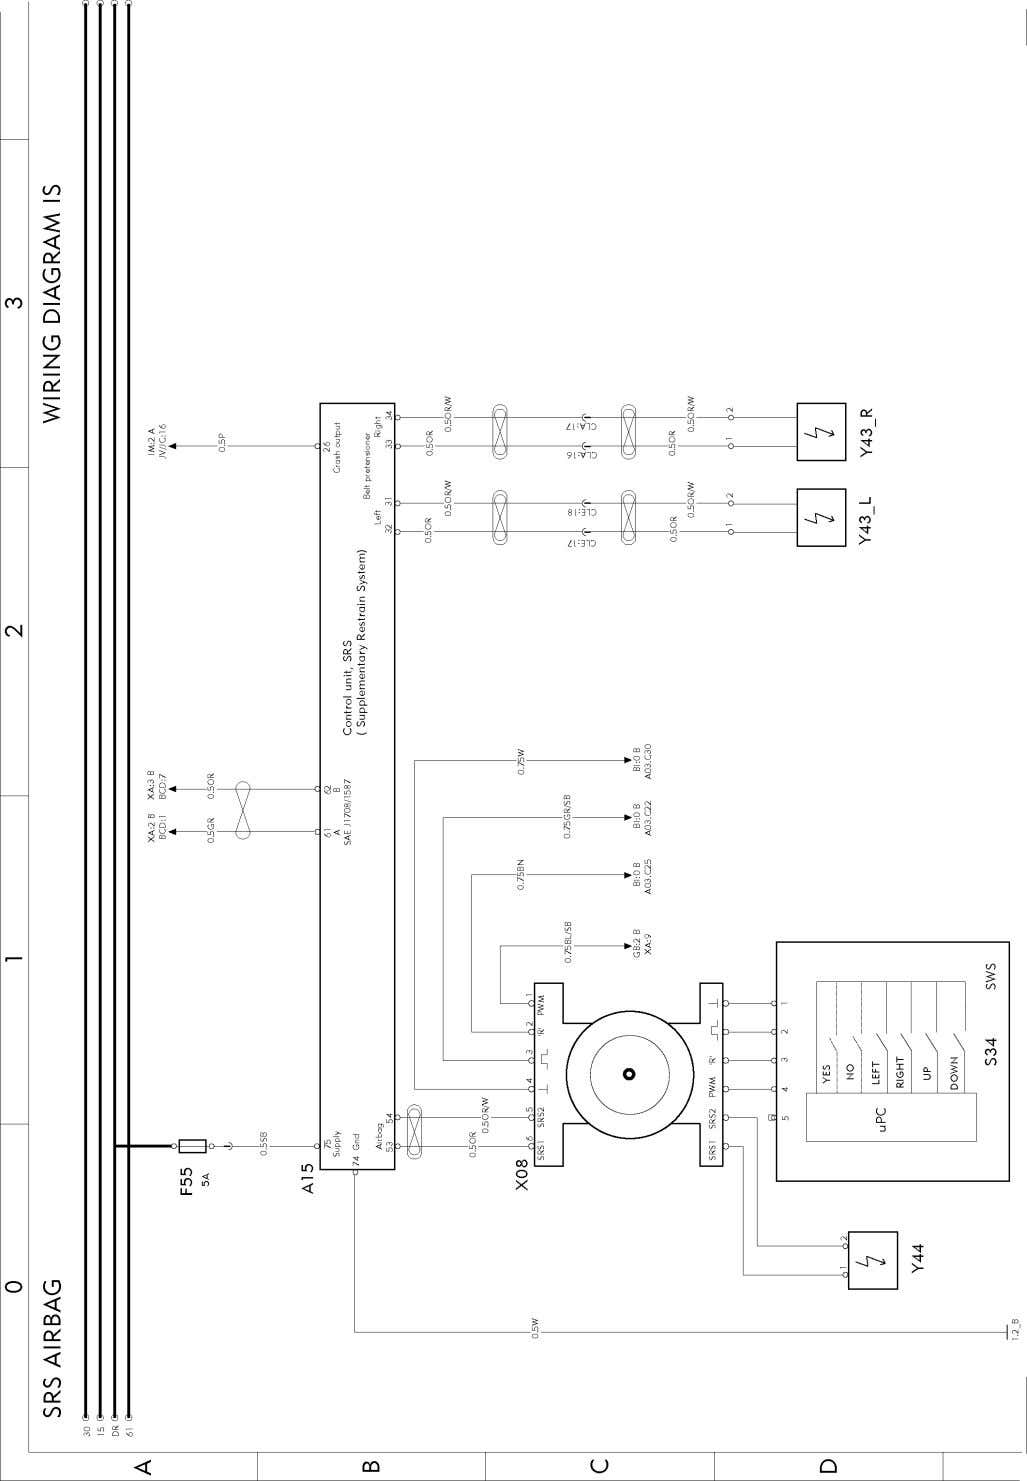 T3053131 Wiring diagram Page 97 (298)